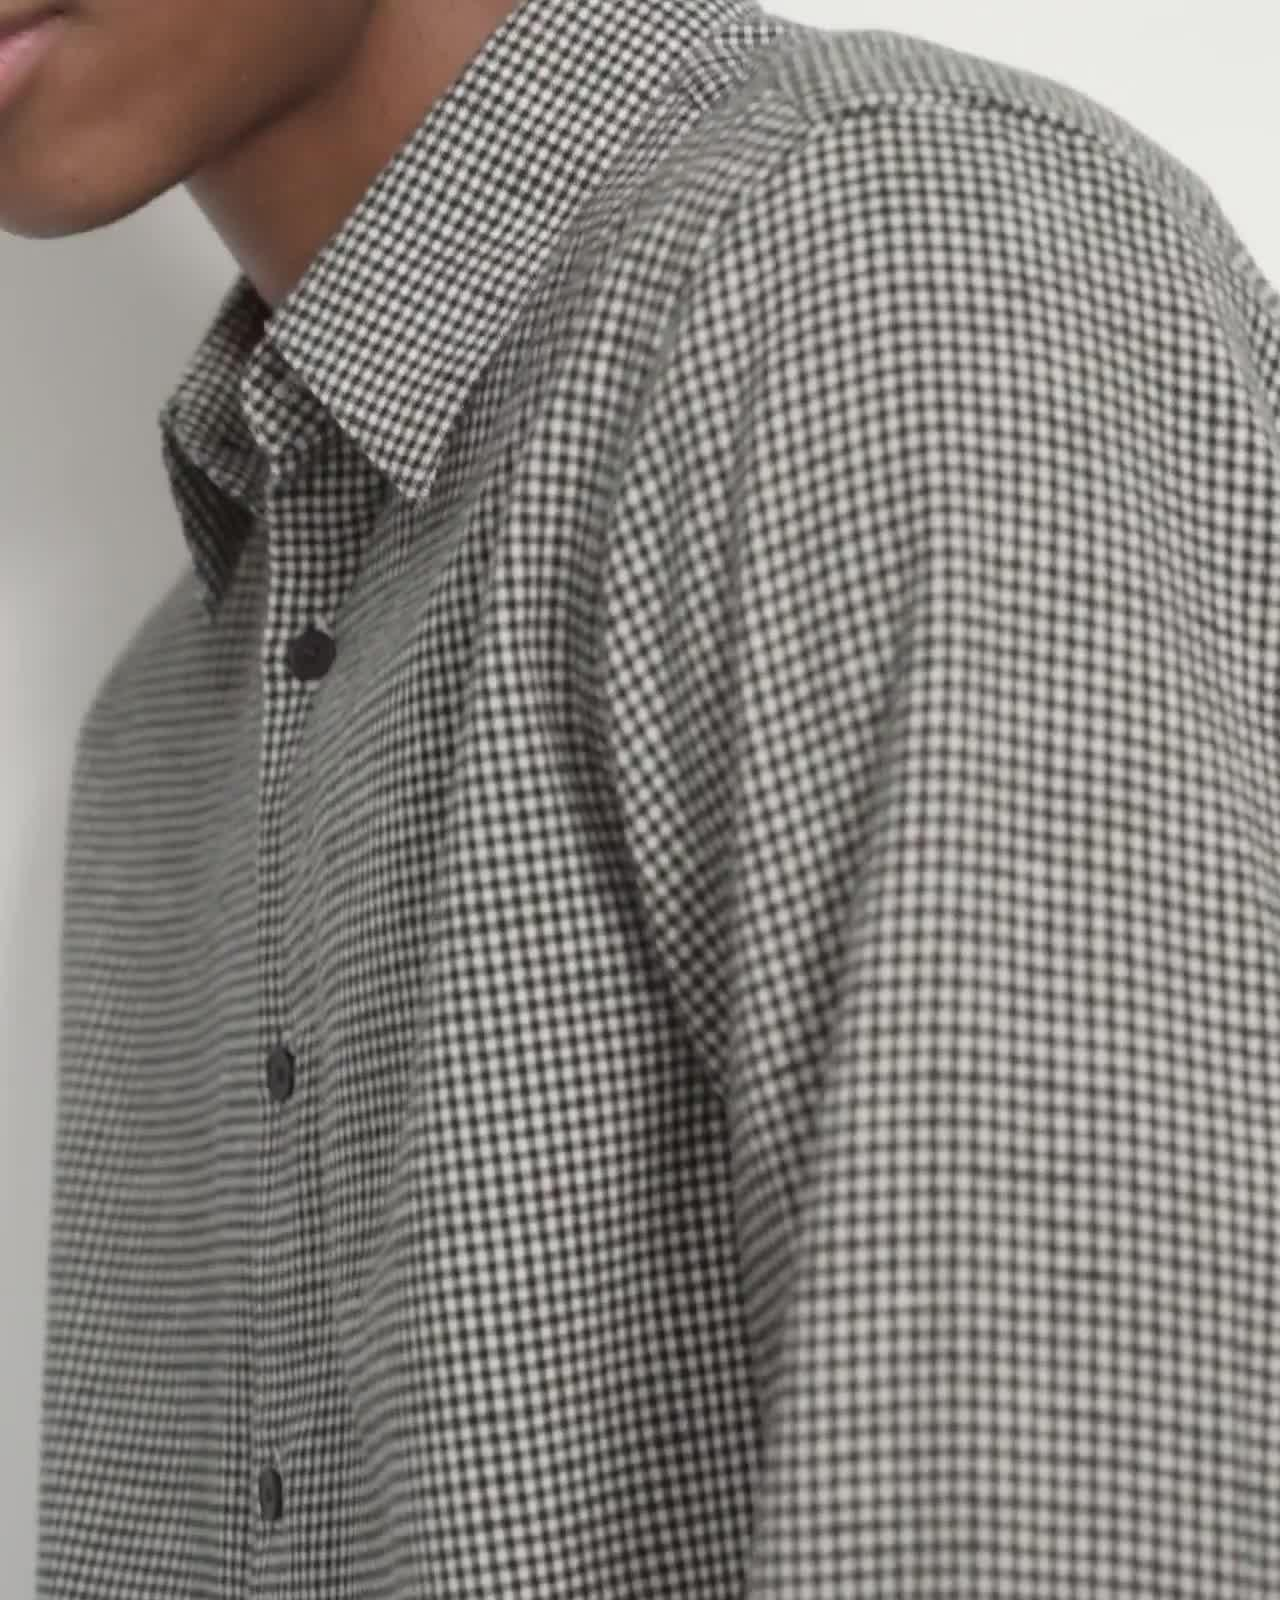 Irving Shirt in Gingham Cotton Blend